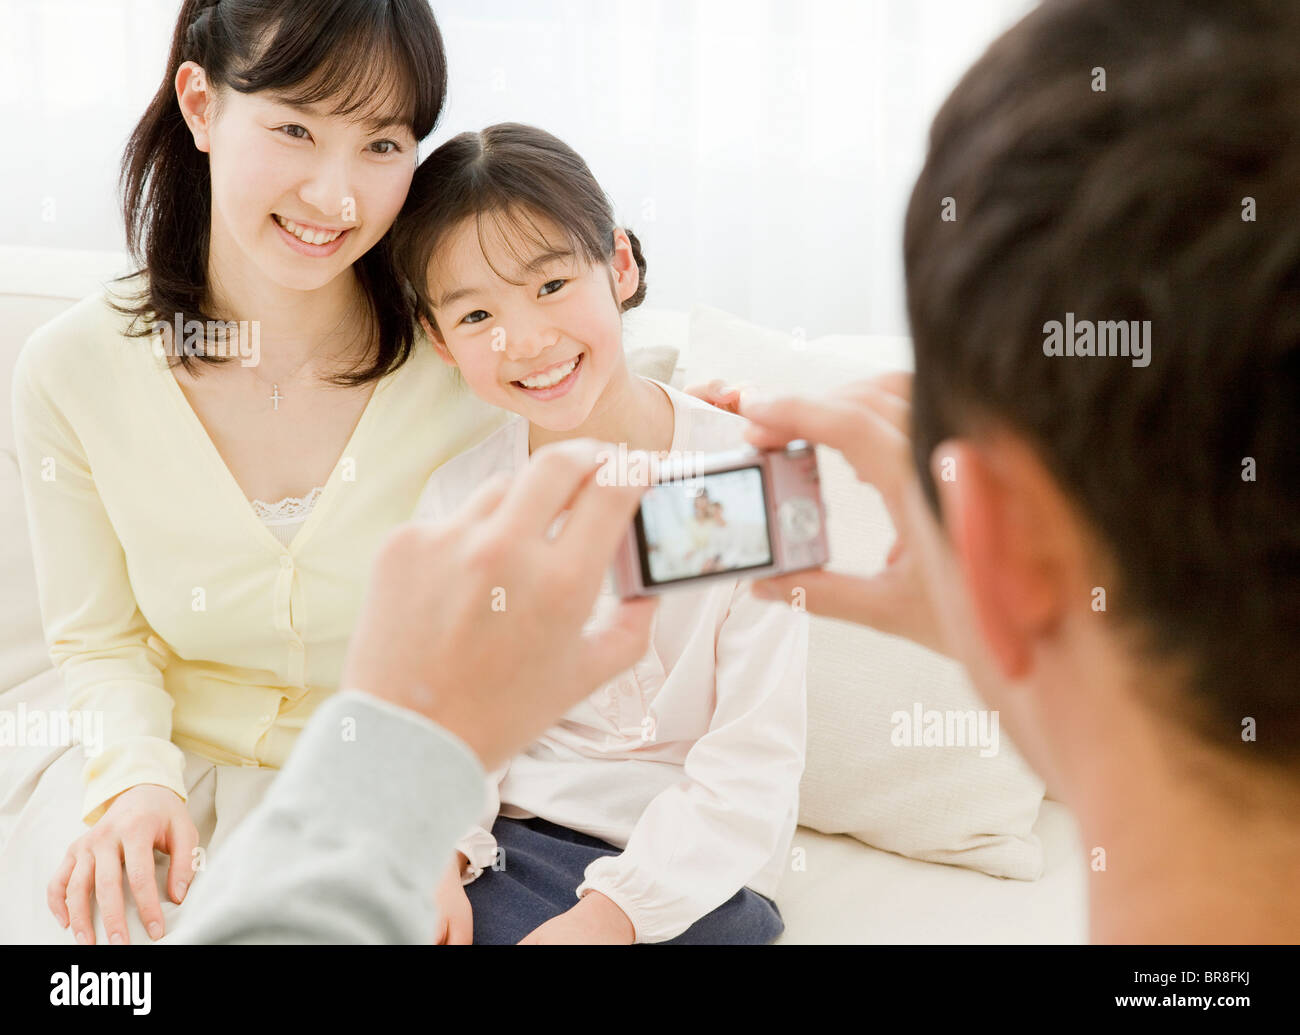 Father taking a photograph of mother and daughter Stock Photo